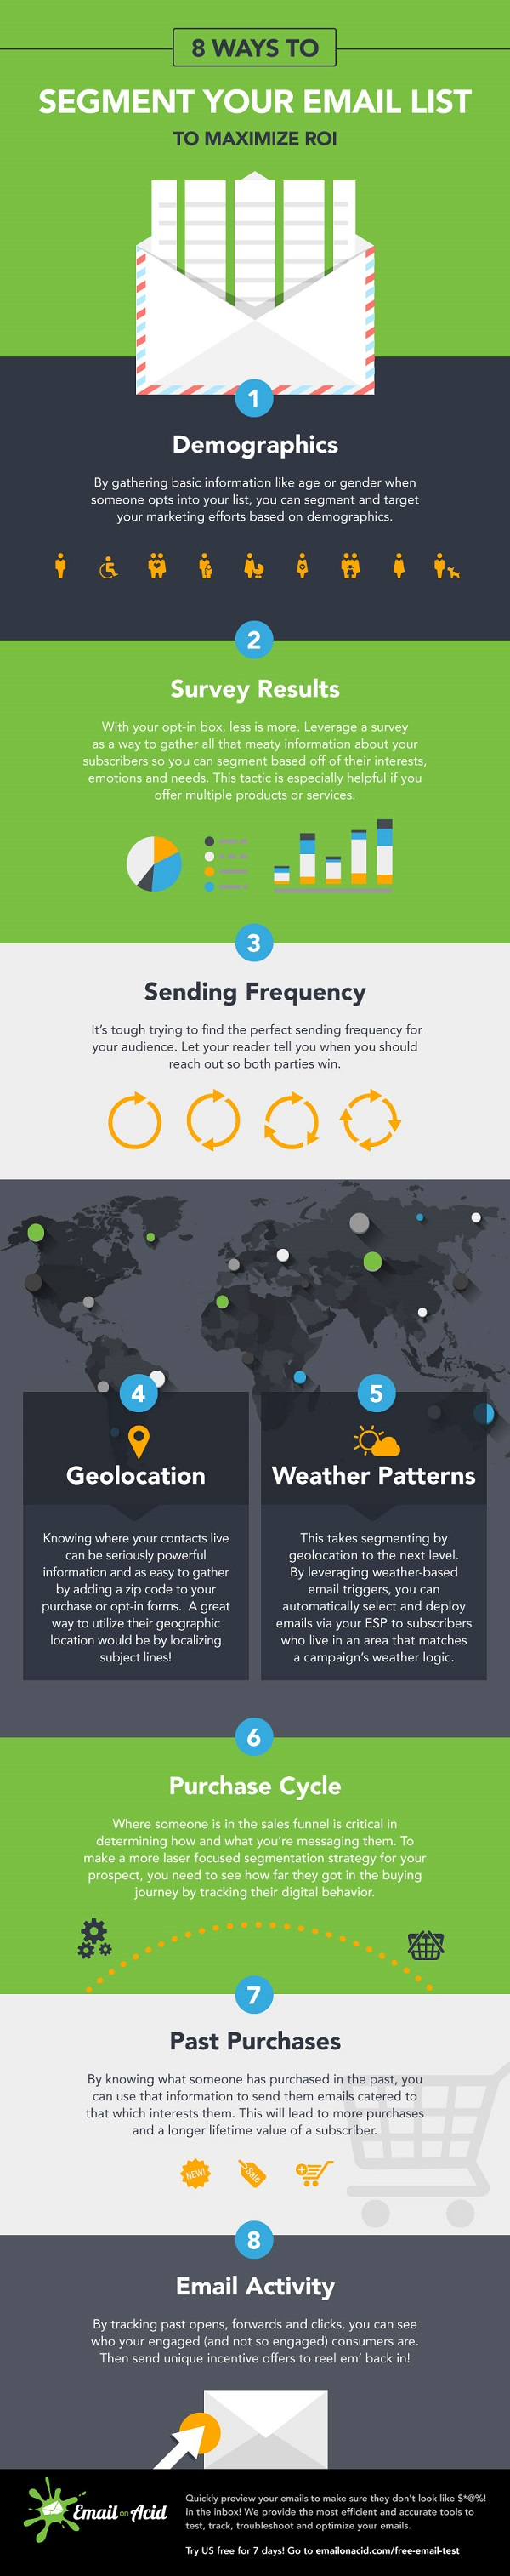 ways to segment your email list to maximize roi grab your infographic